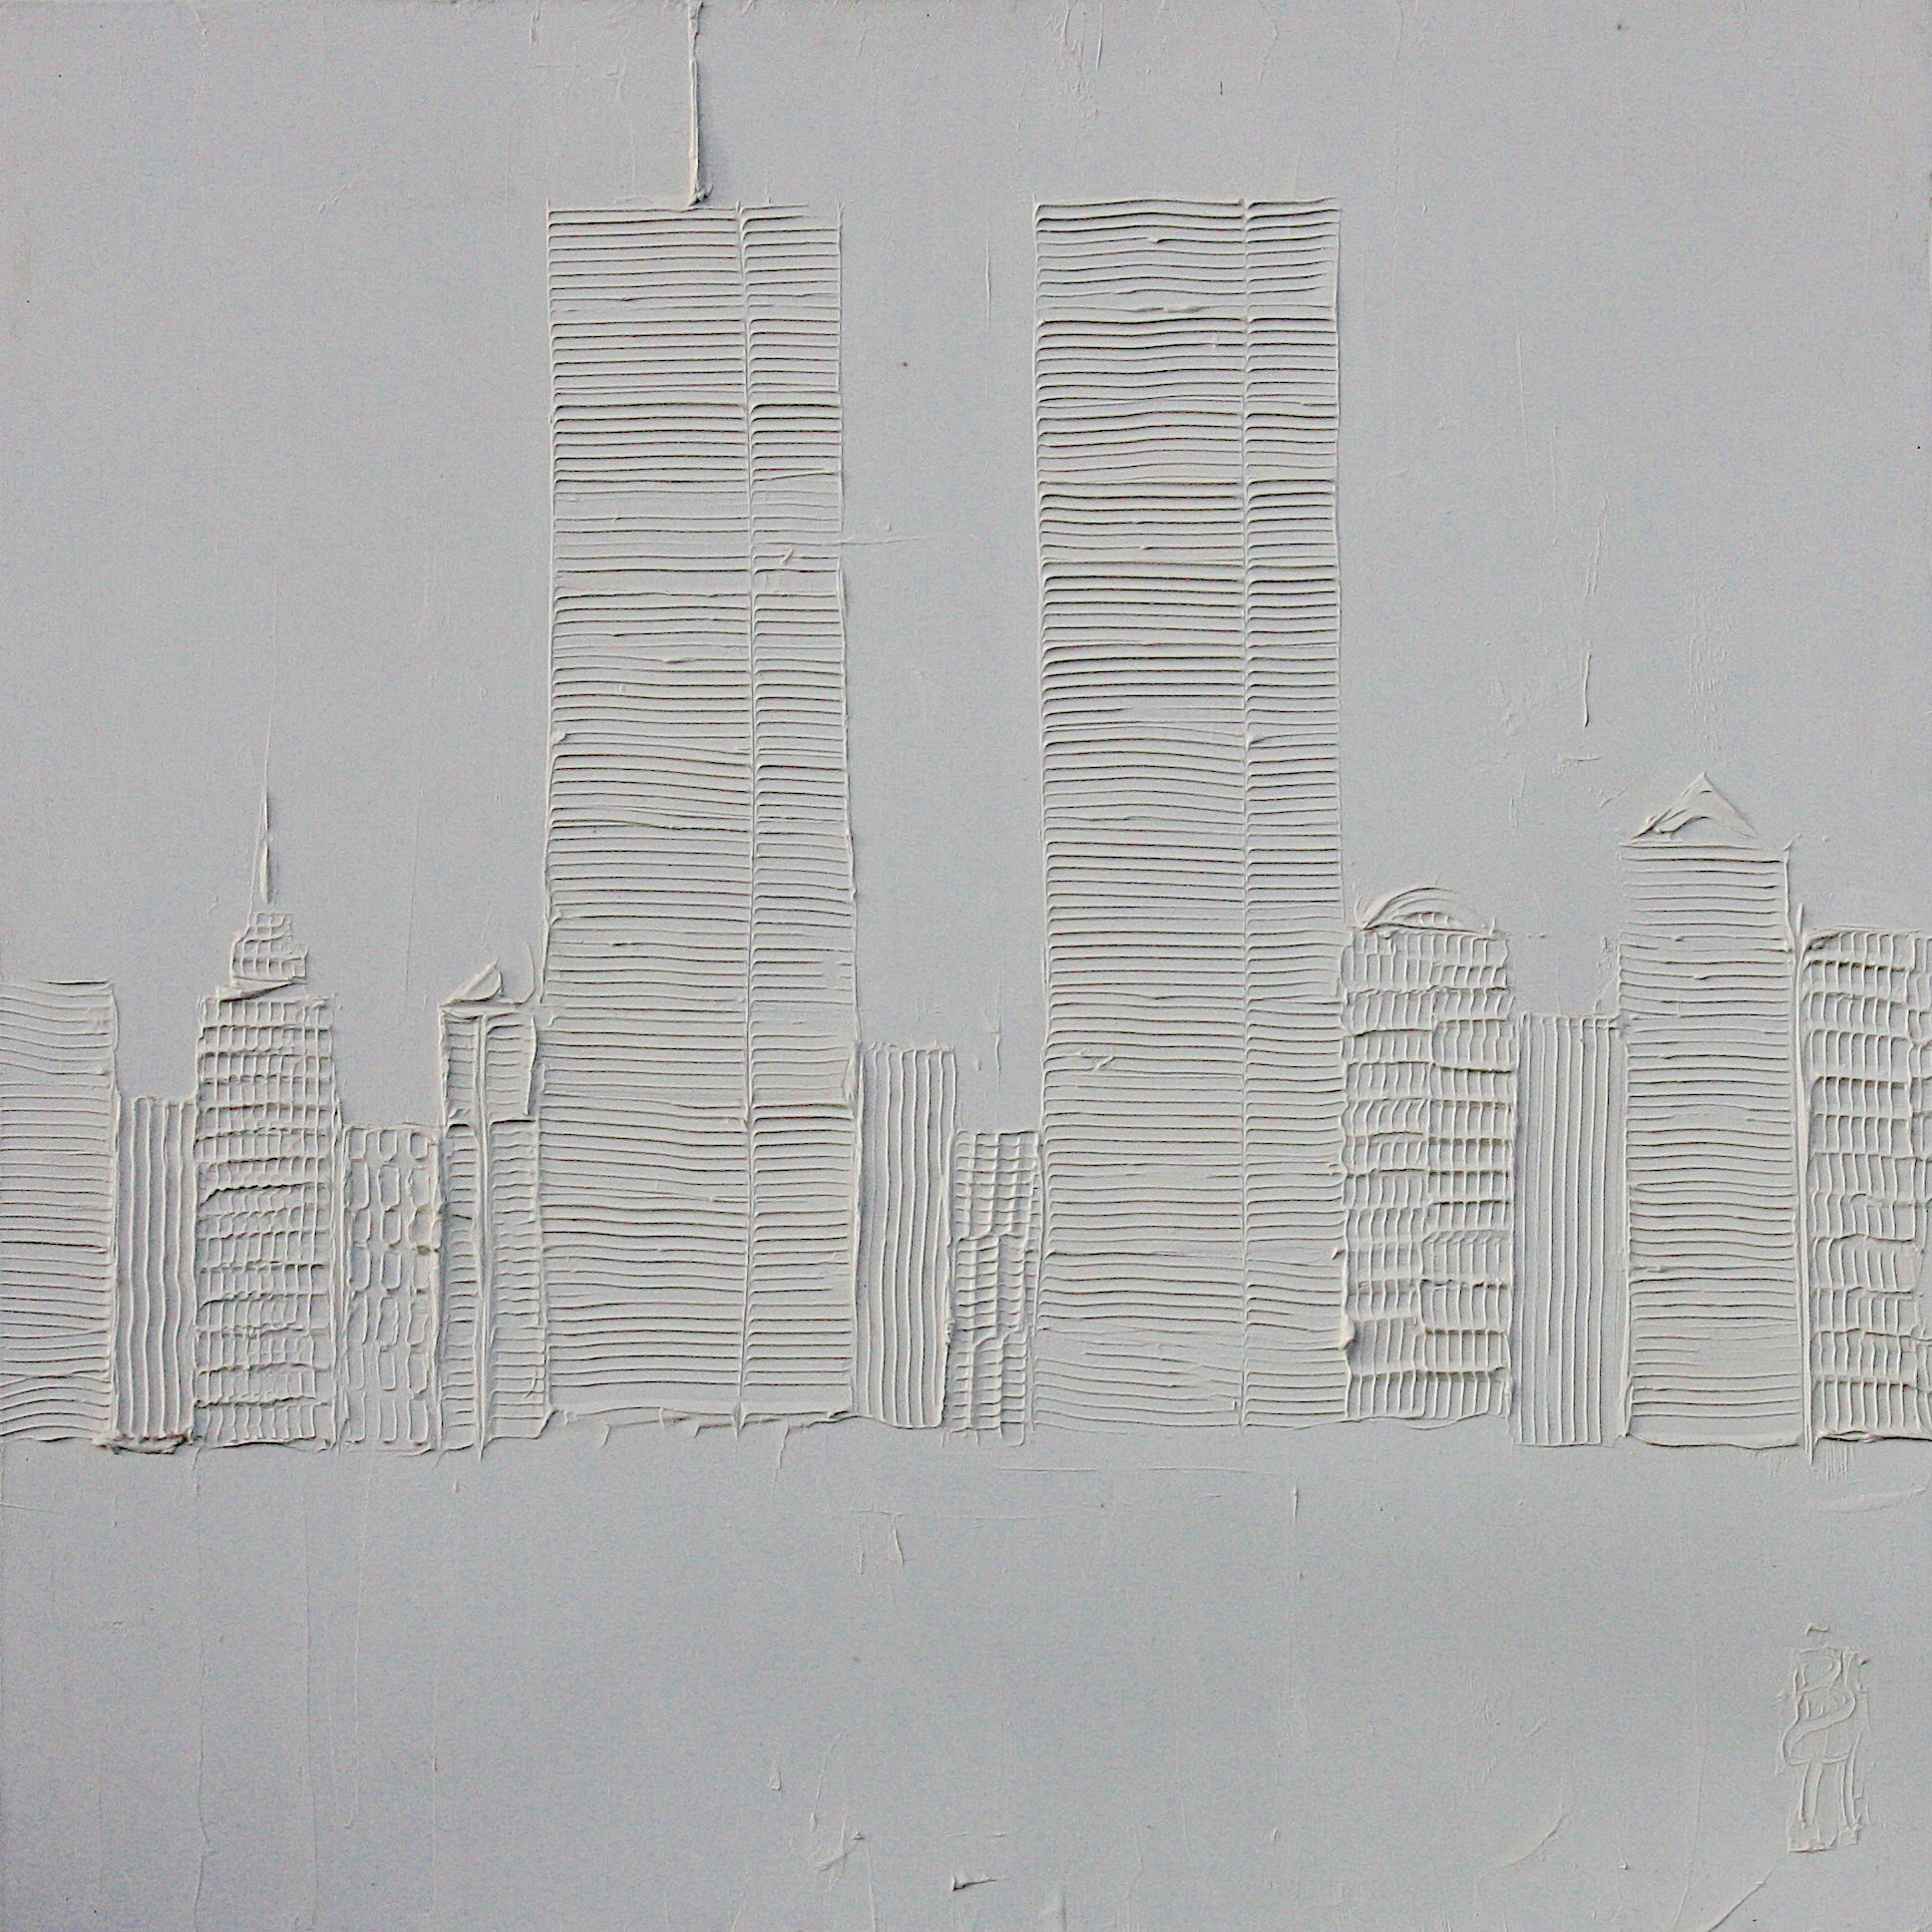 World Trade Center 1m X 1m Sculpted Titanium White Oil Paint On Canvas 2010